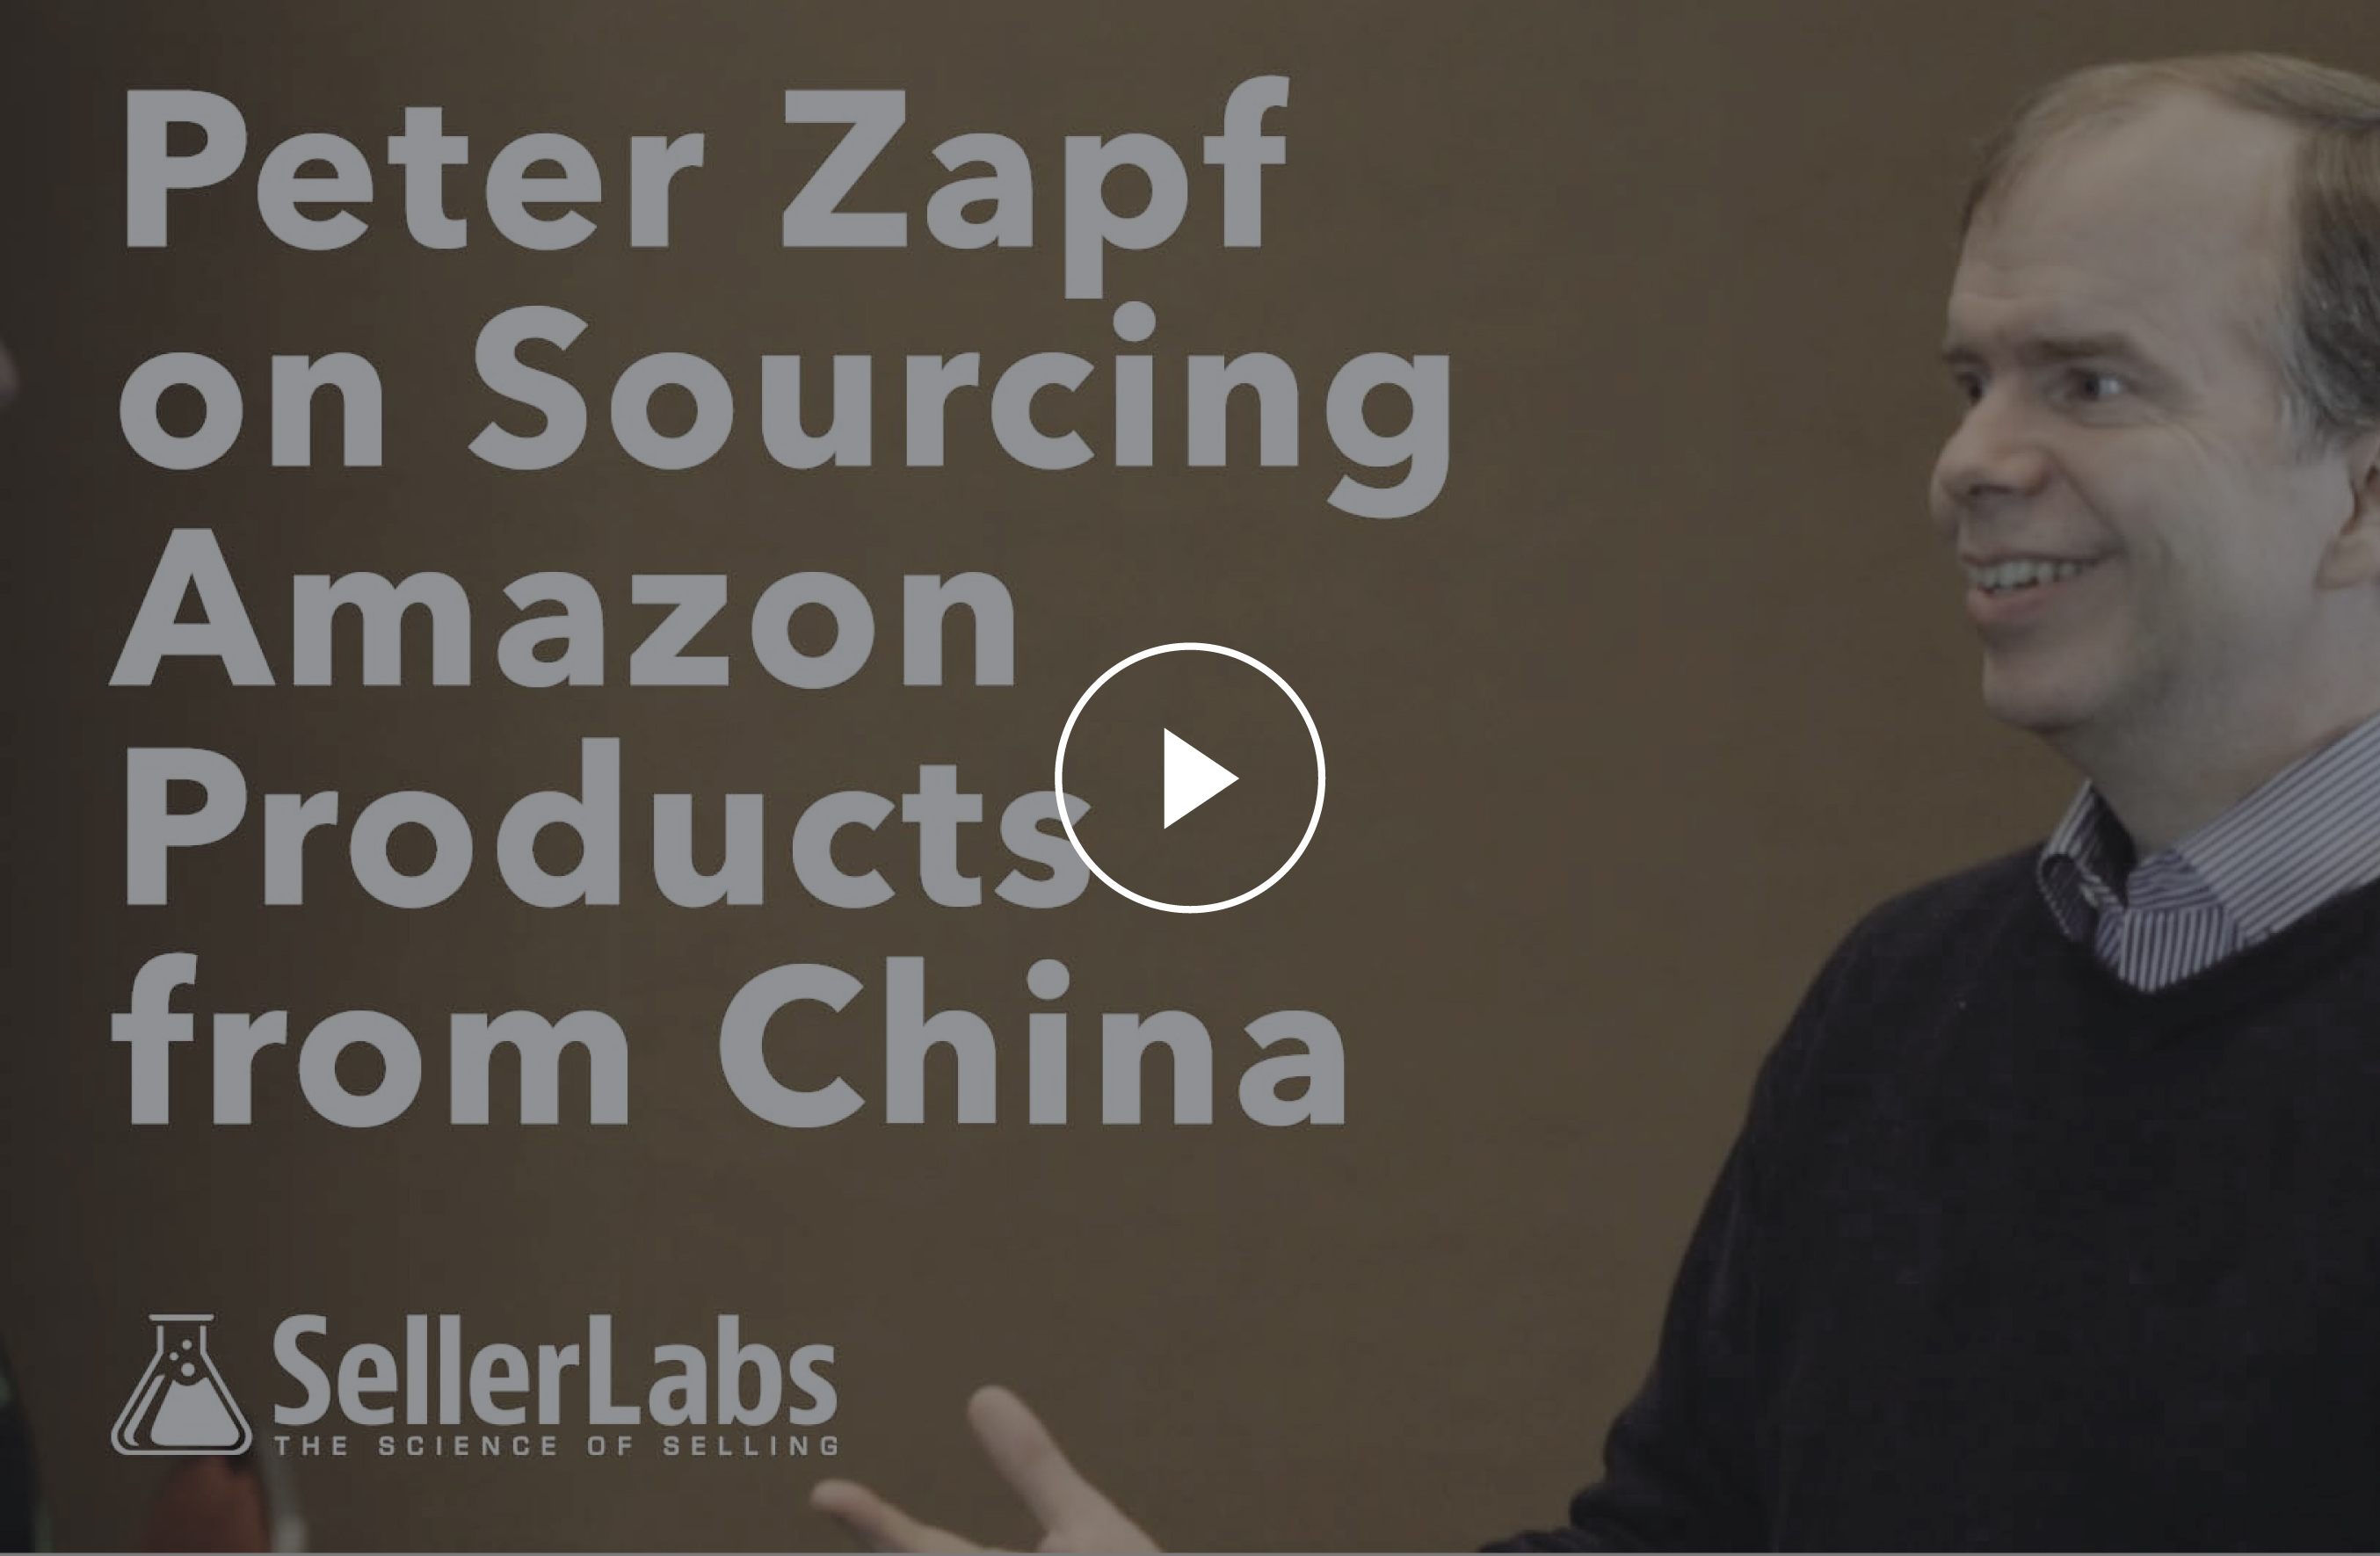 Learn About Sourcing Private Label Products From China With Peter Zapf